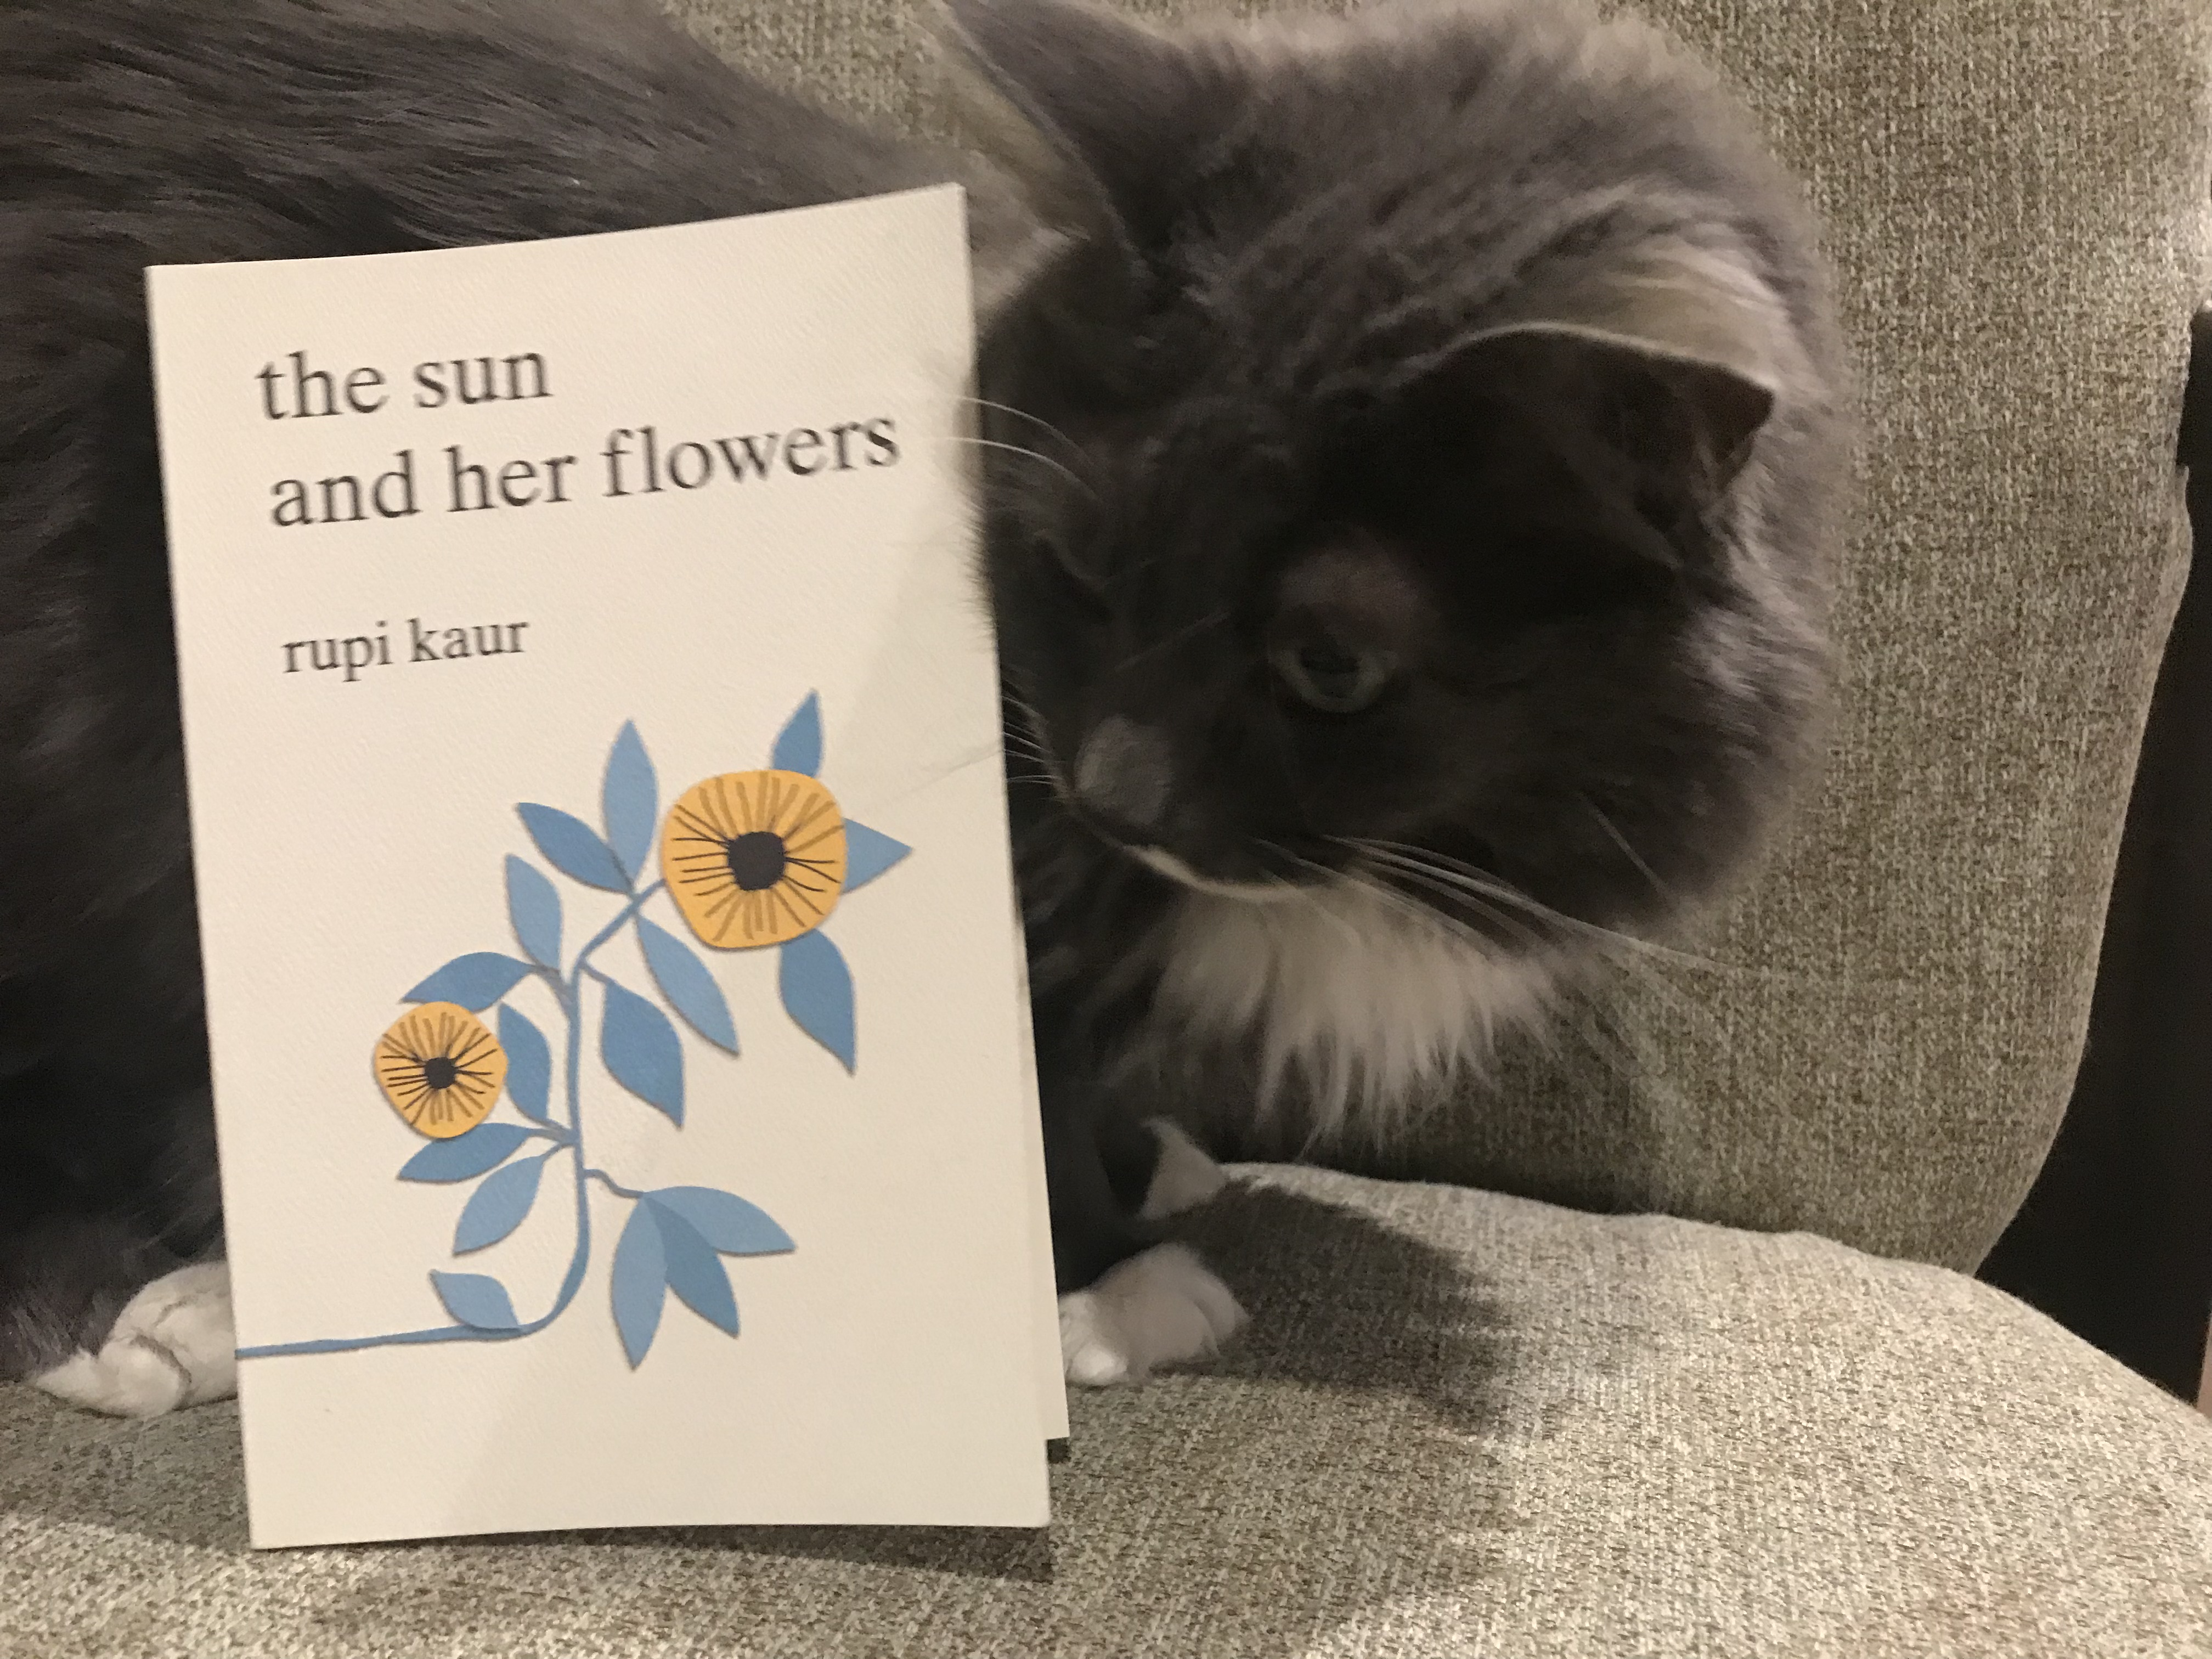 Book Review: the sun and her flowers by rupi kaur